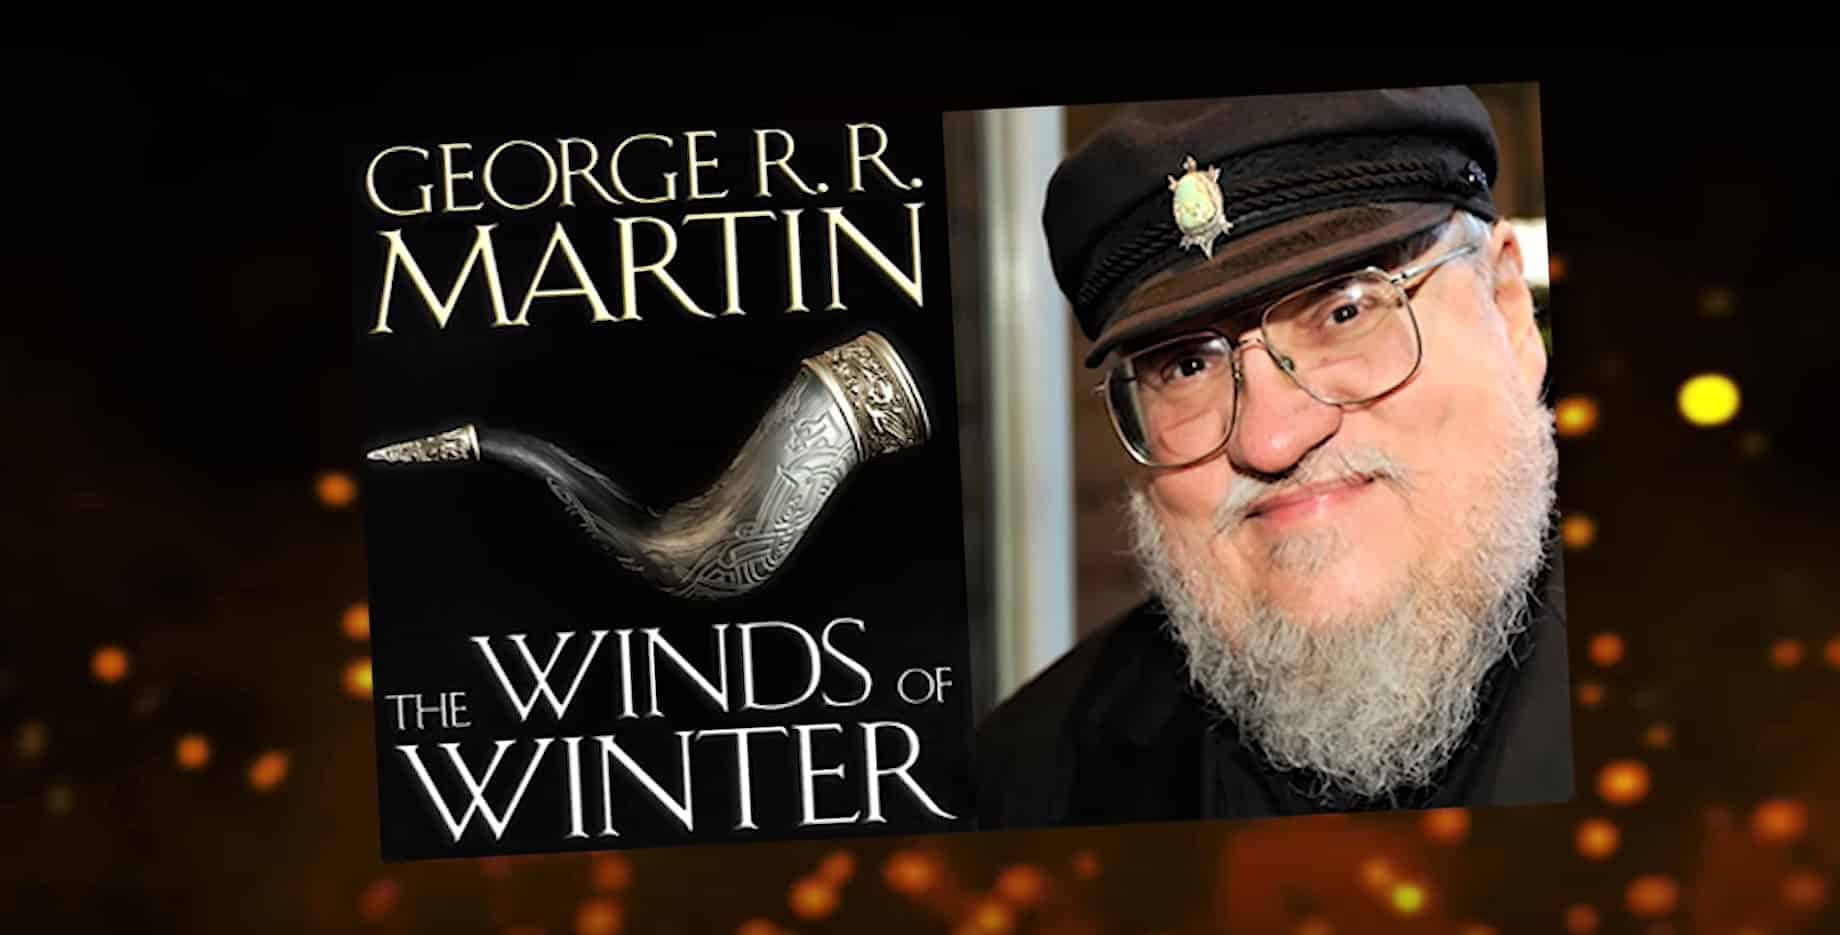 The Winds of Winter Release Date in 2021 Confirmed